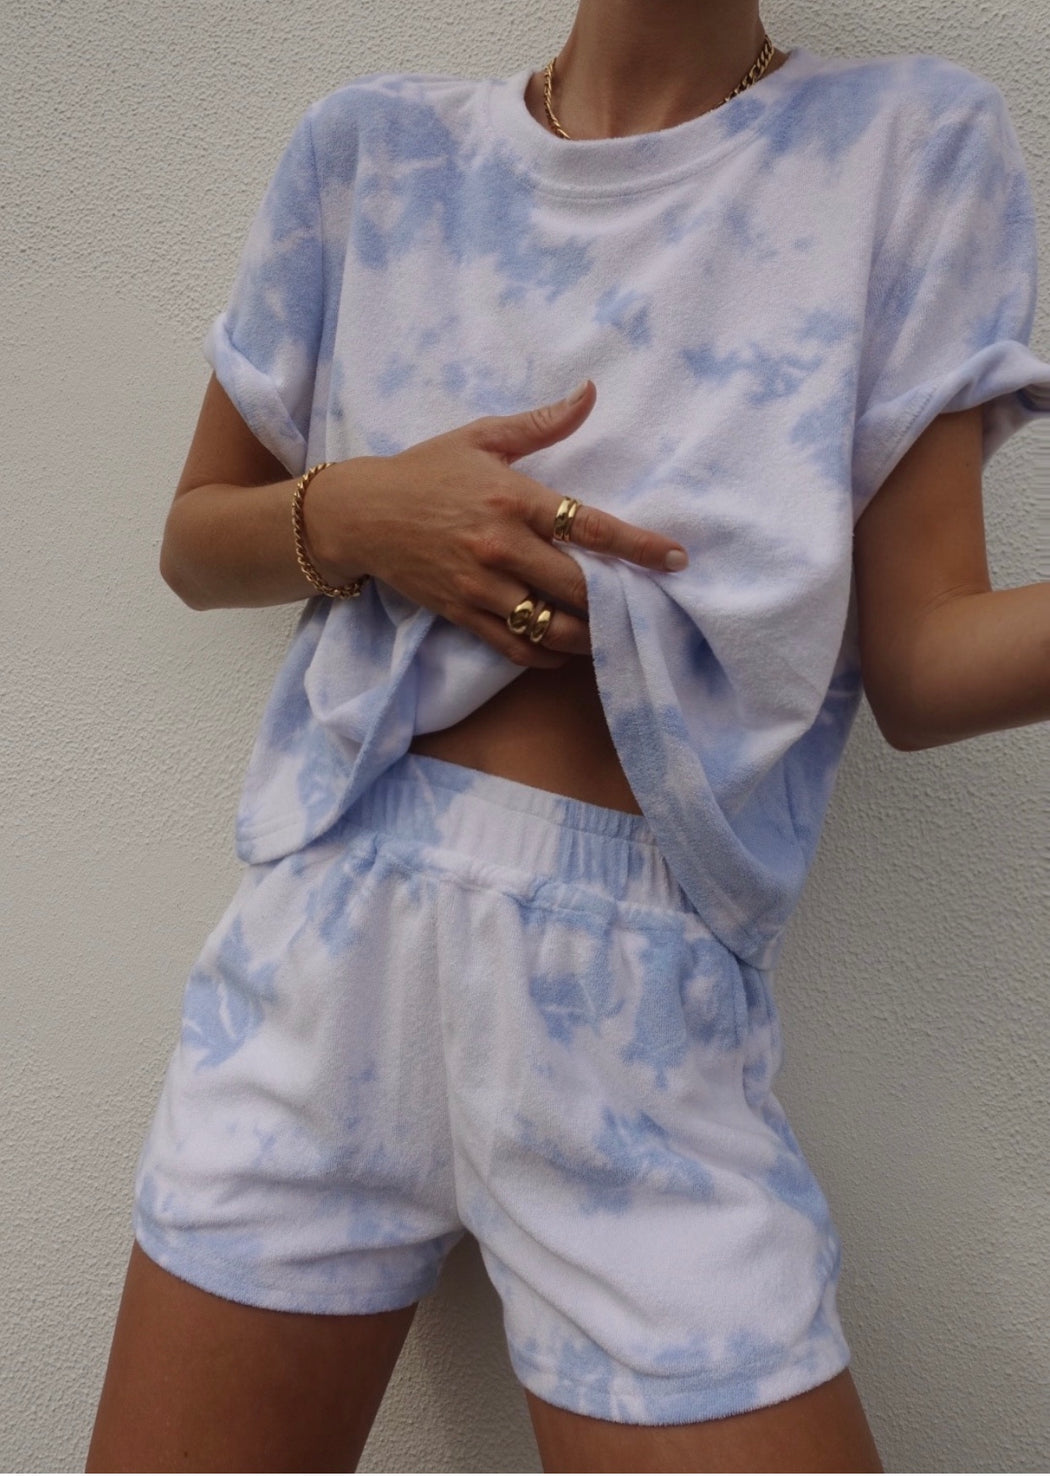 Terry Blue Tye Dye Short Set